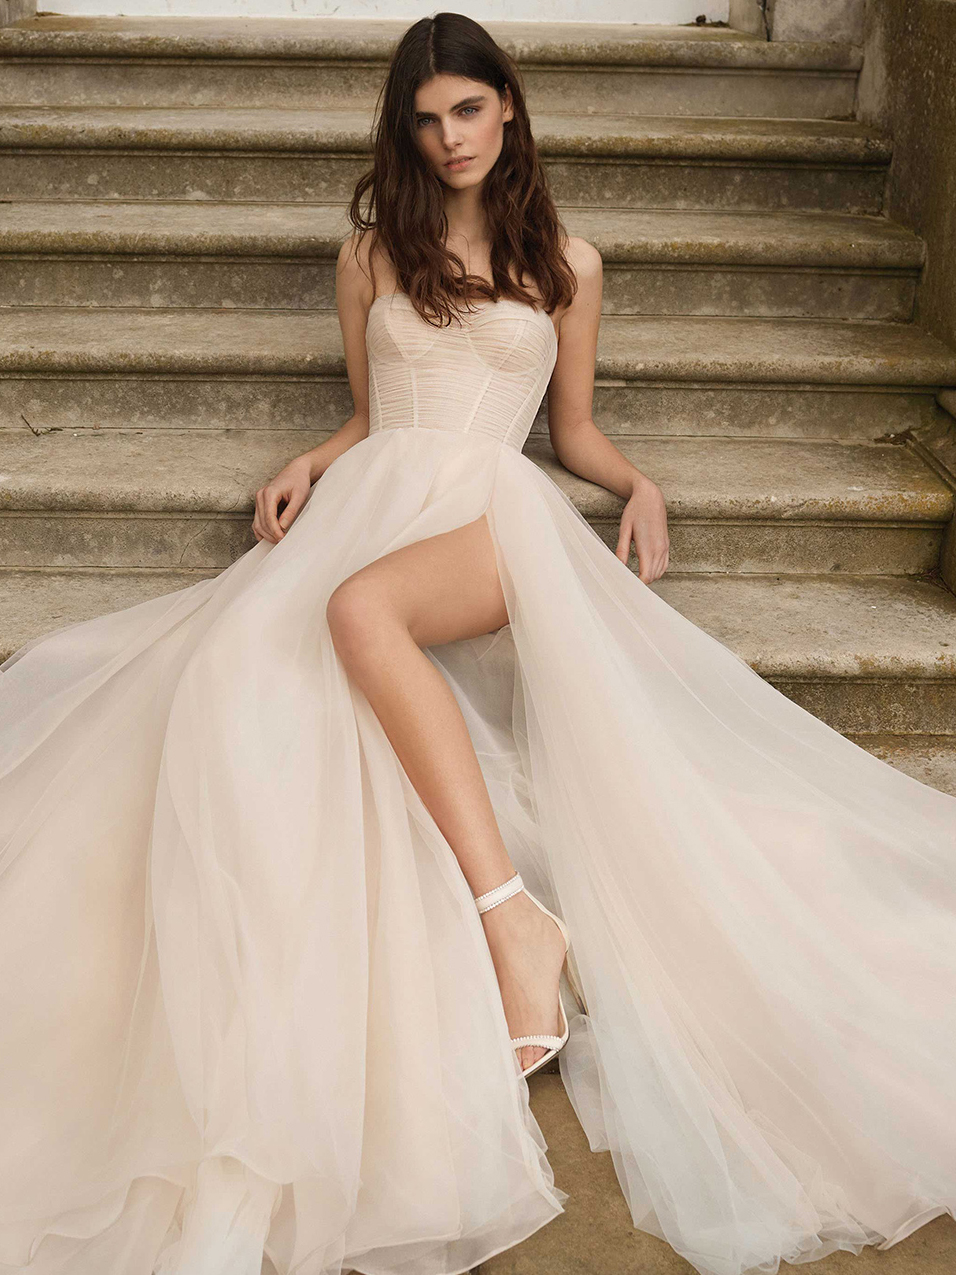 G-501 Inspirated By Collection No. X Gala by Galia Lahav Bridal Couture 2021